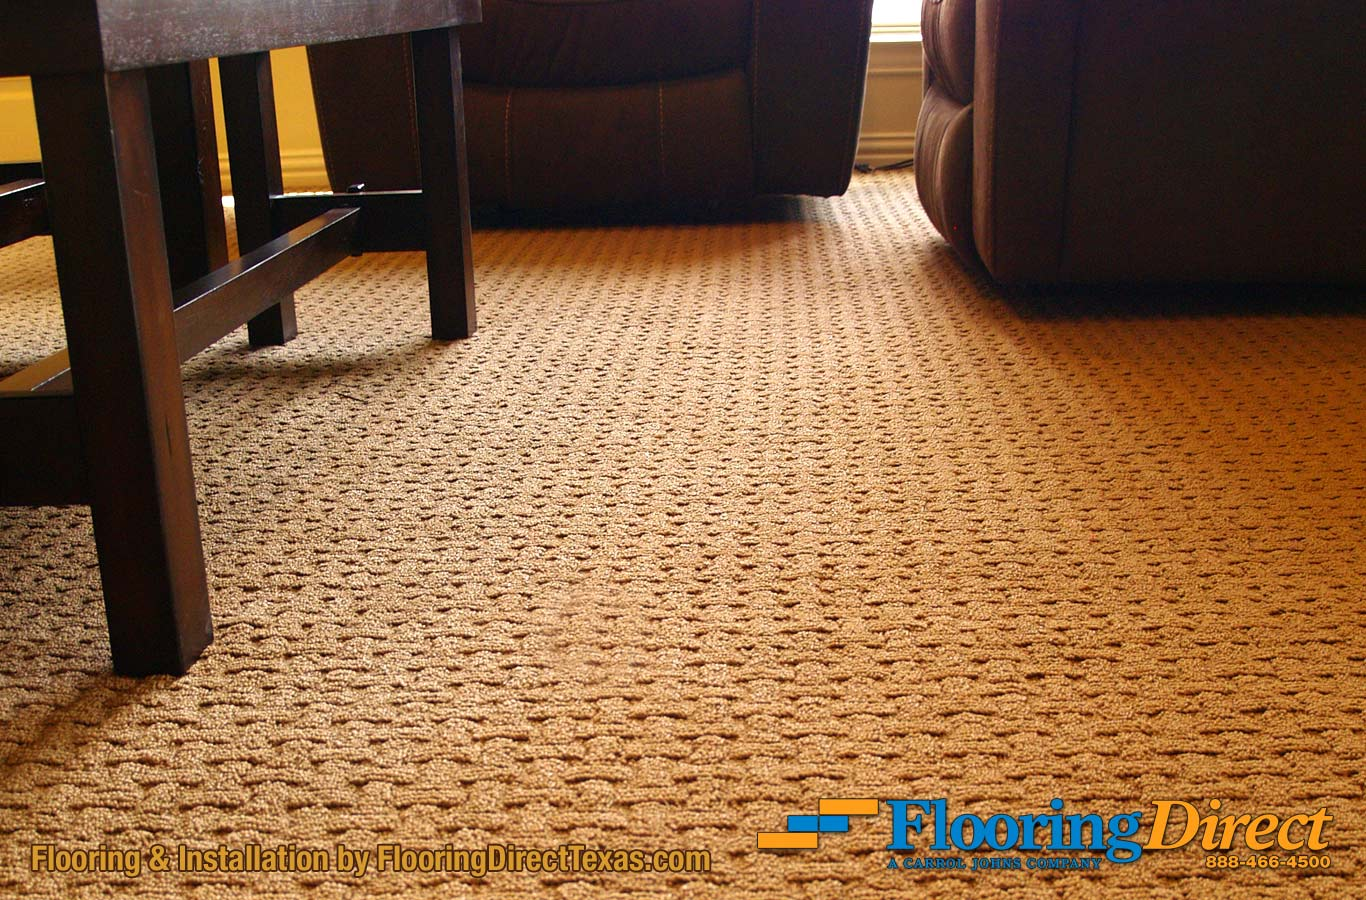 Residential carpet flooring in frisco tx flooring direct for Texas floors